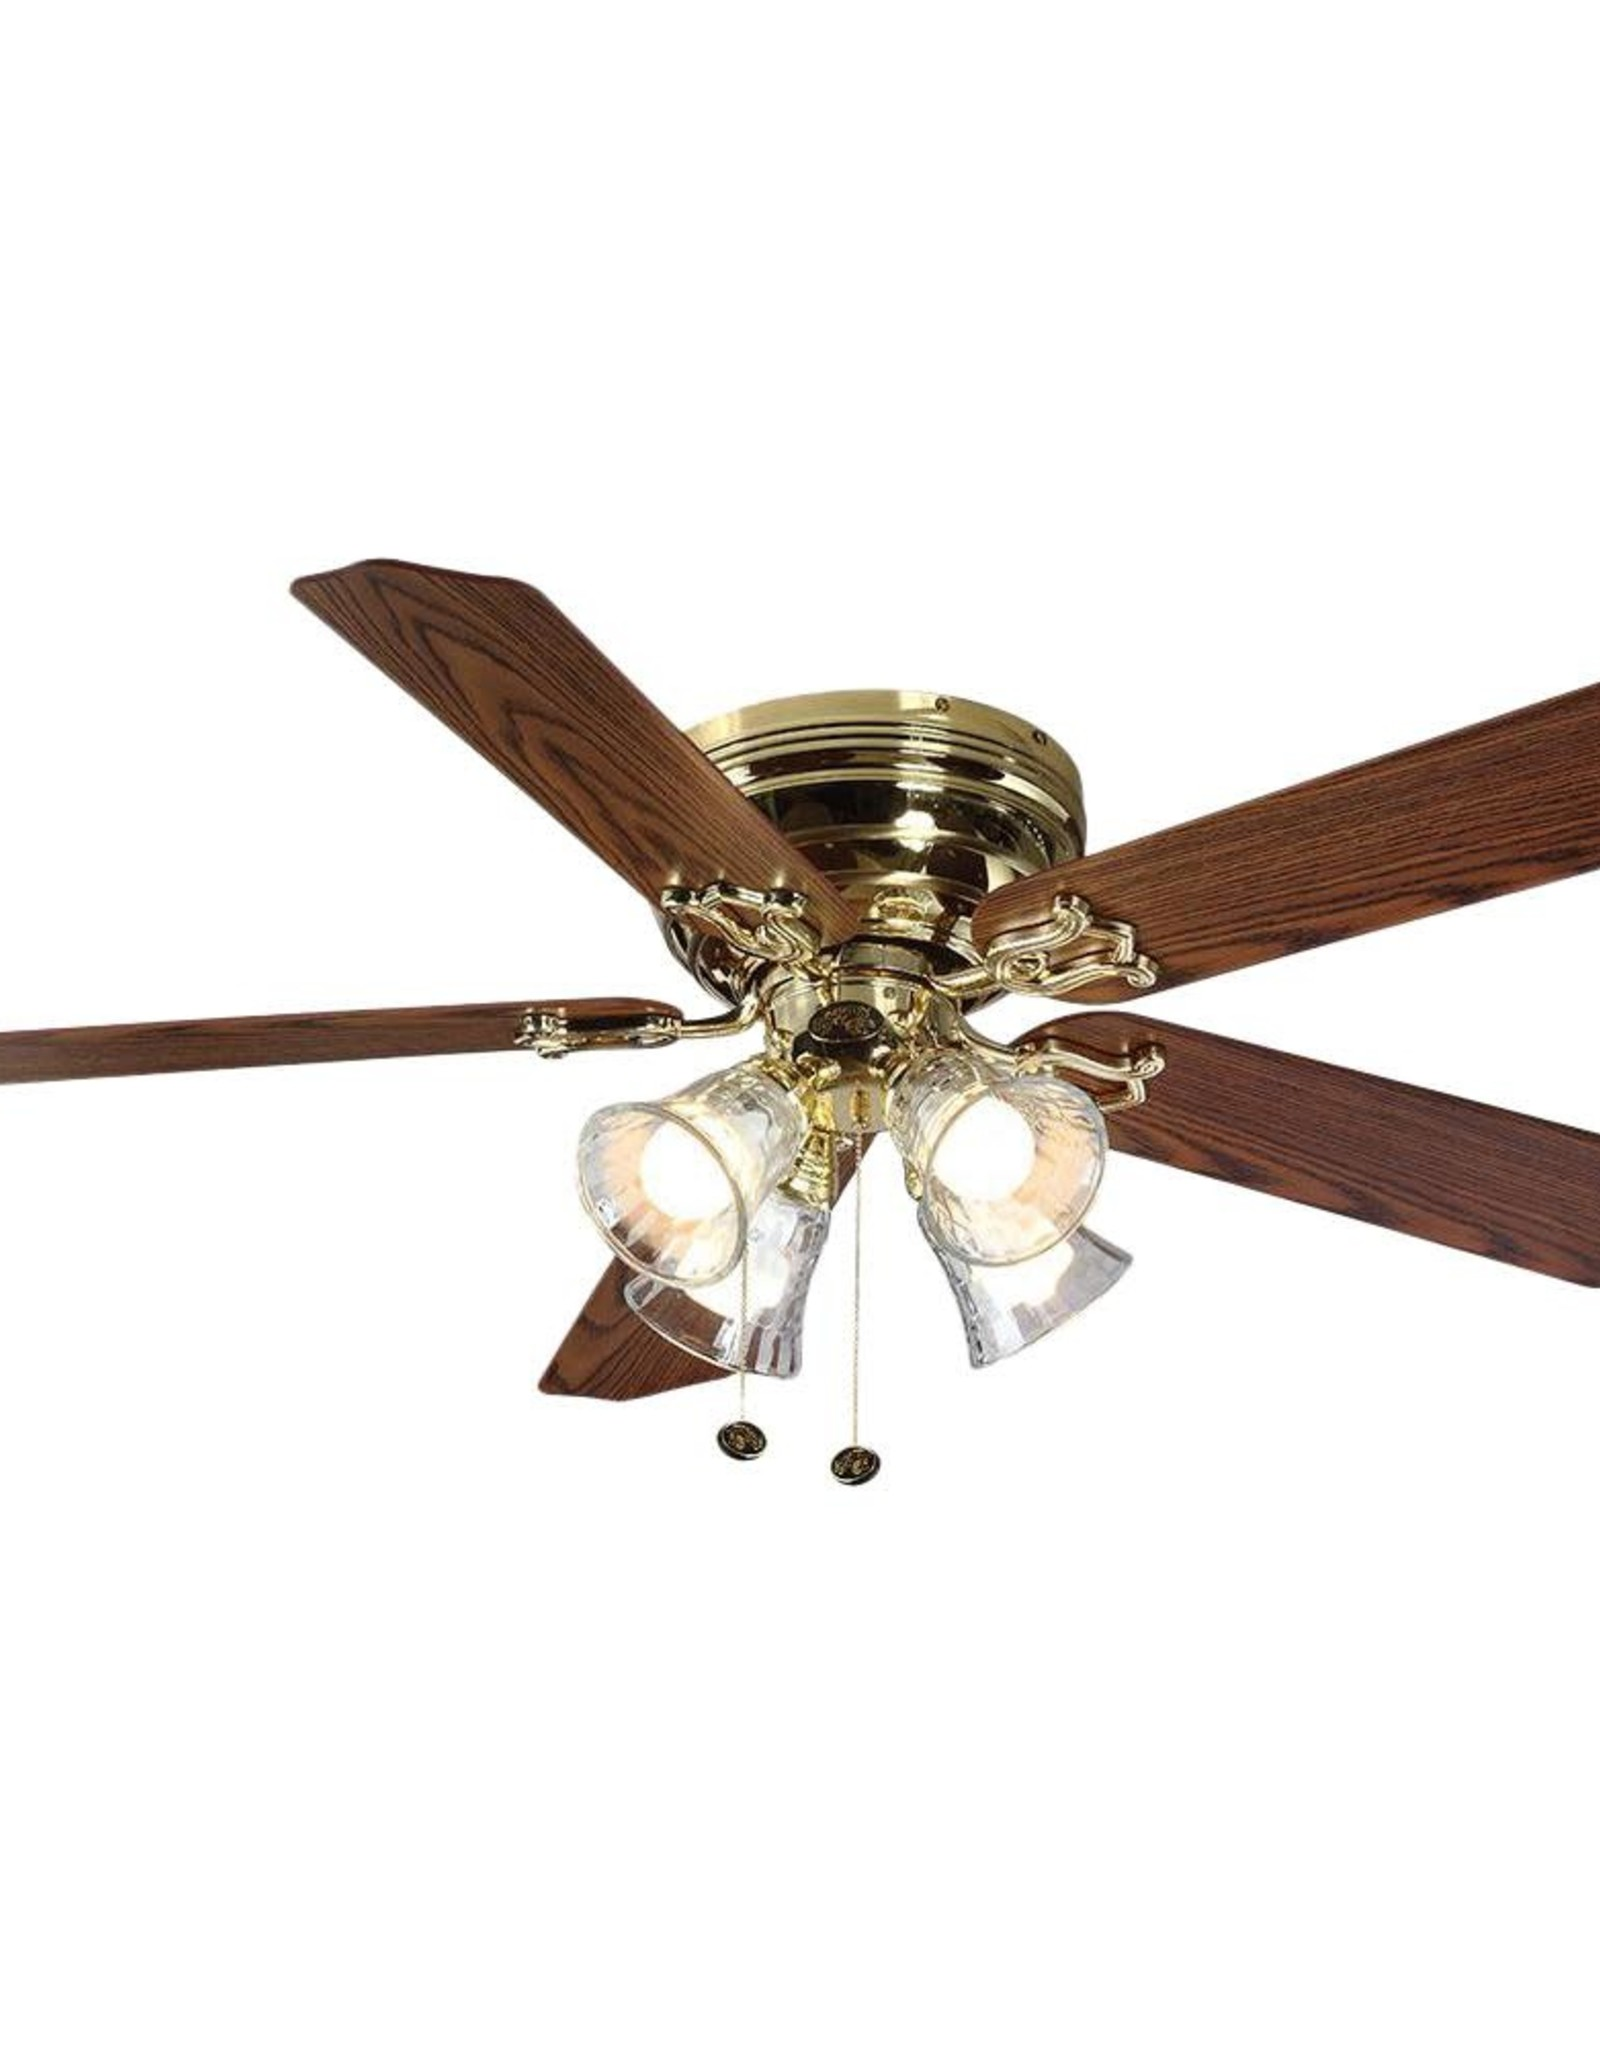 Hampton Bay Carriage House 52 in. LED Indoor Polished Brass Ceiling Fan with Light Kit